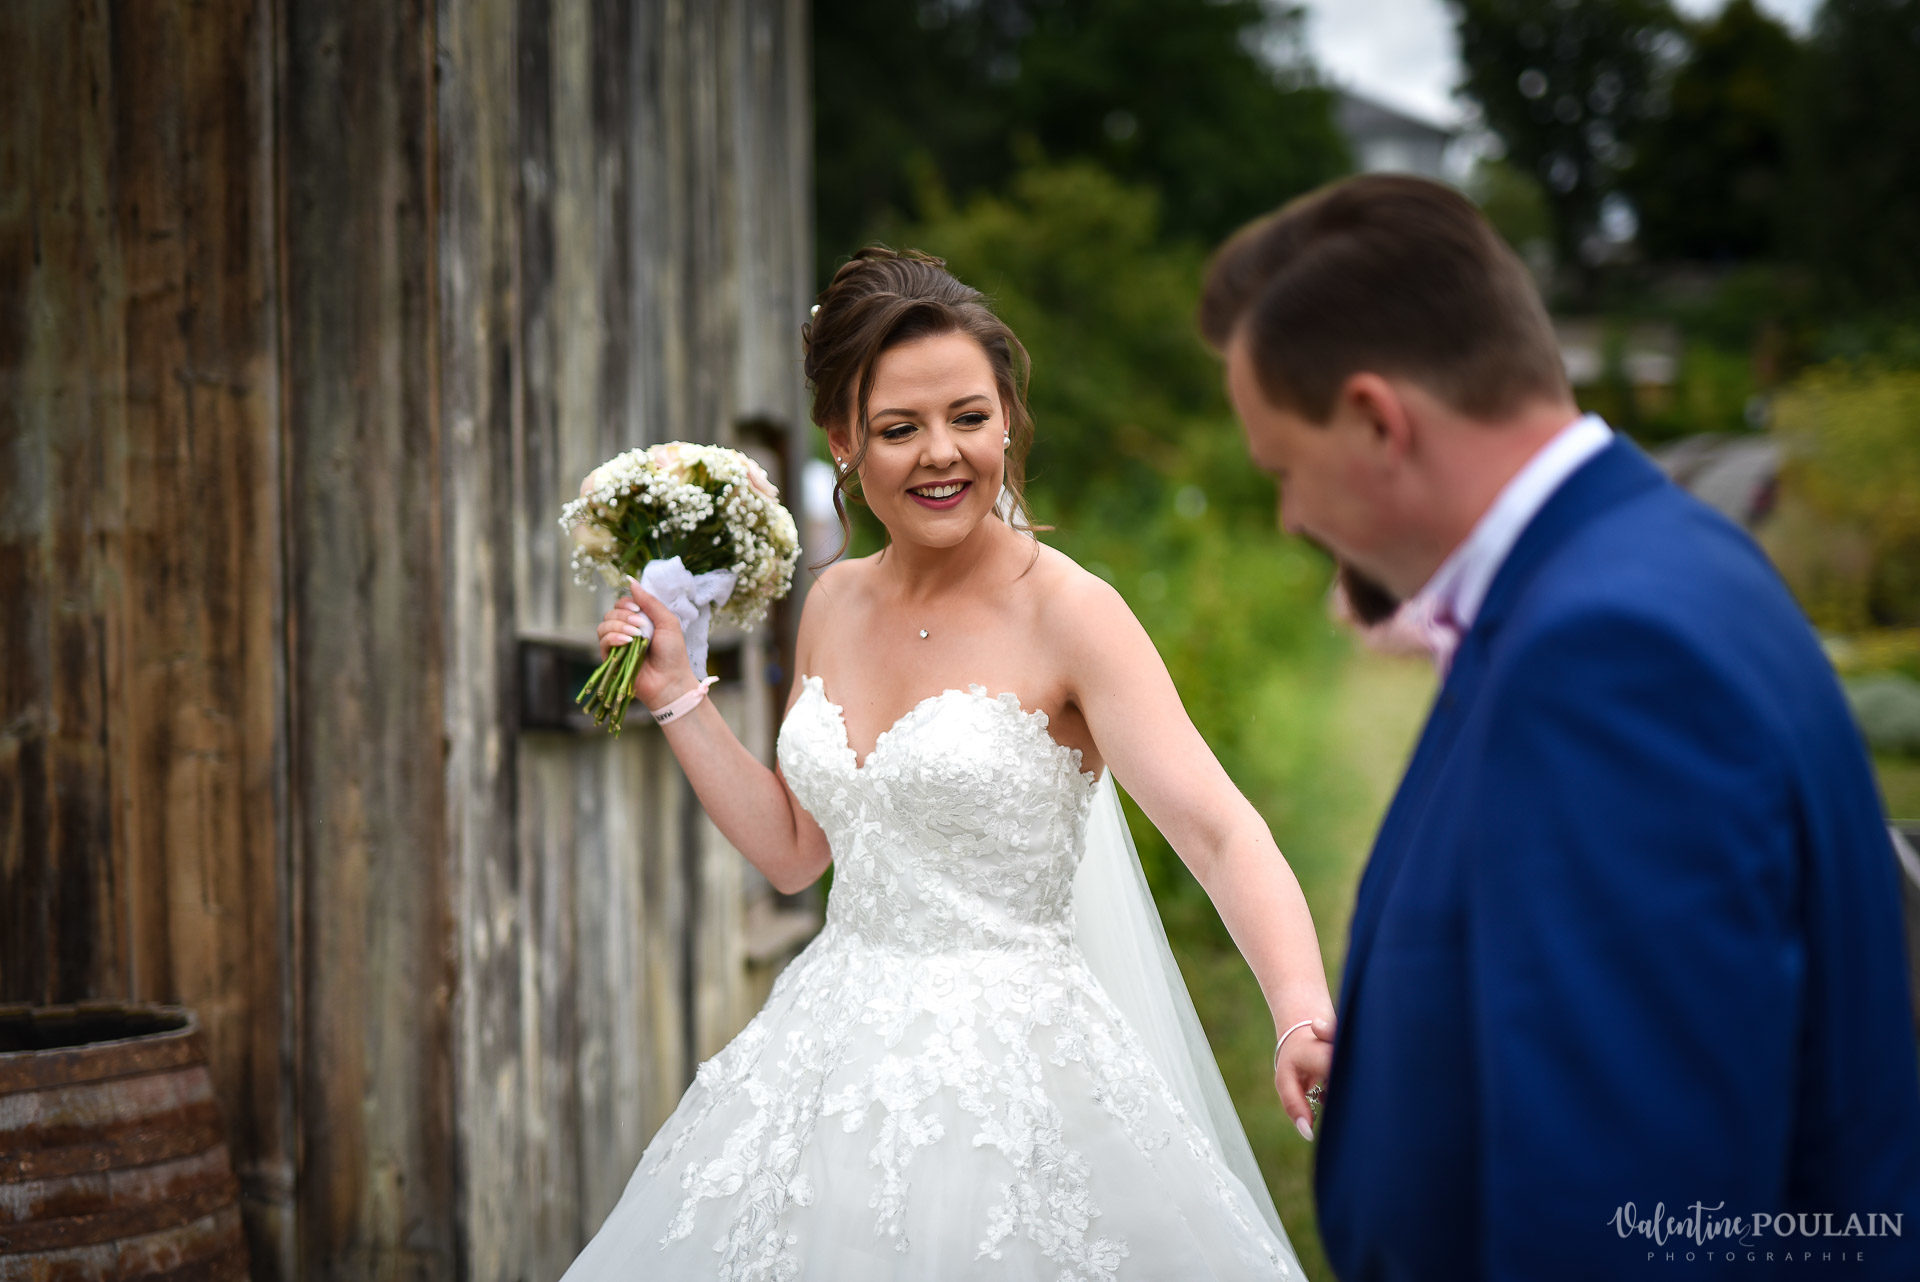 Mariage cool ferme weyerbach - Valentine Poulain first look